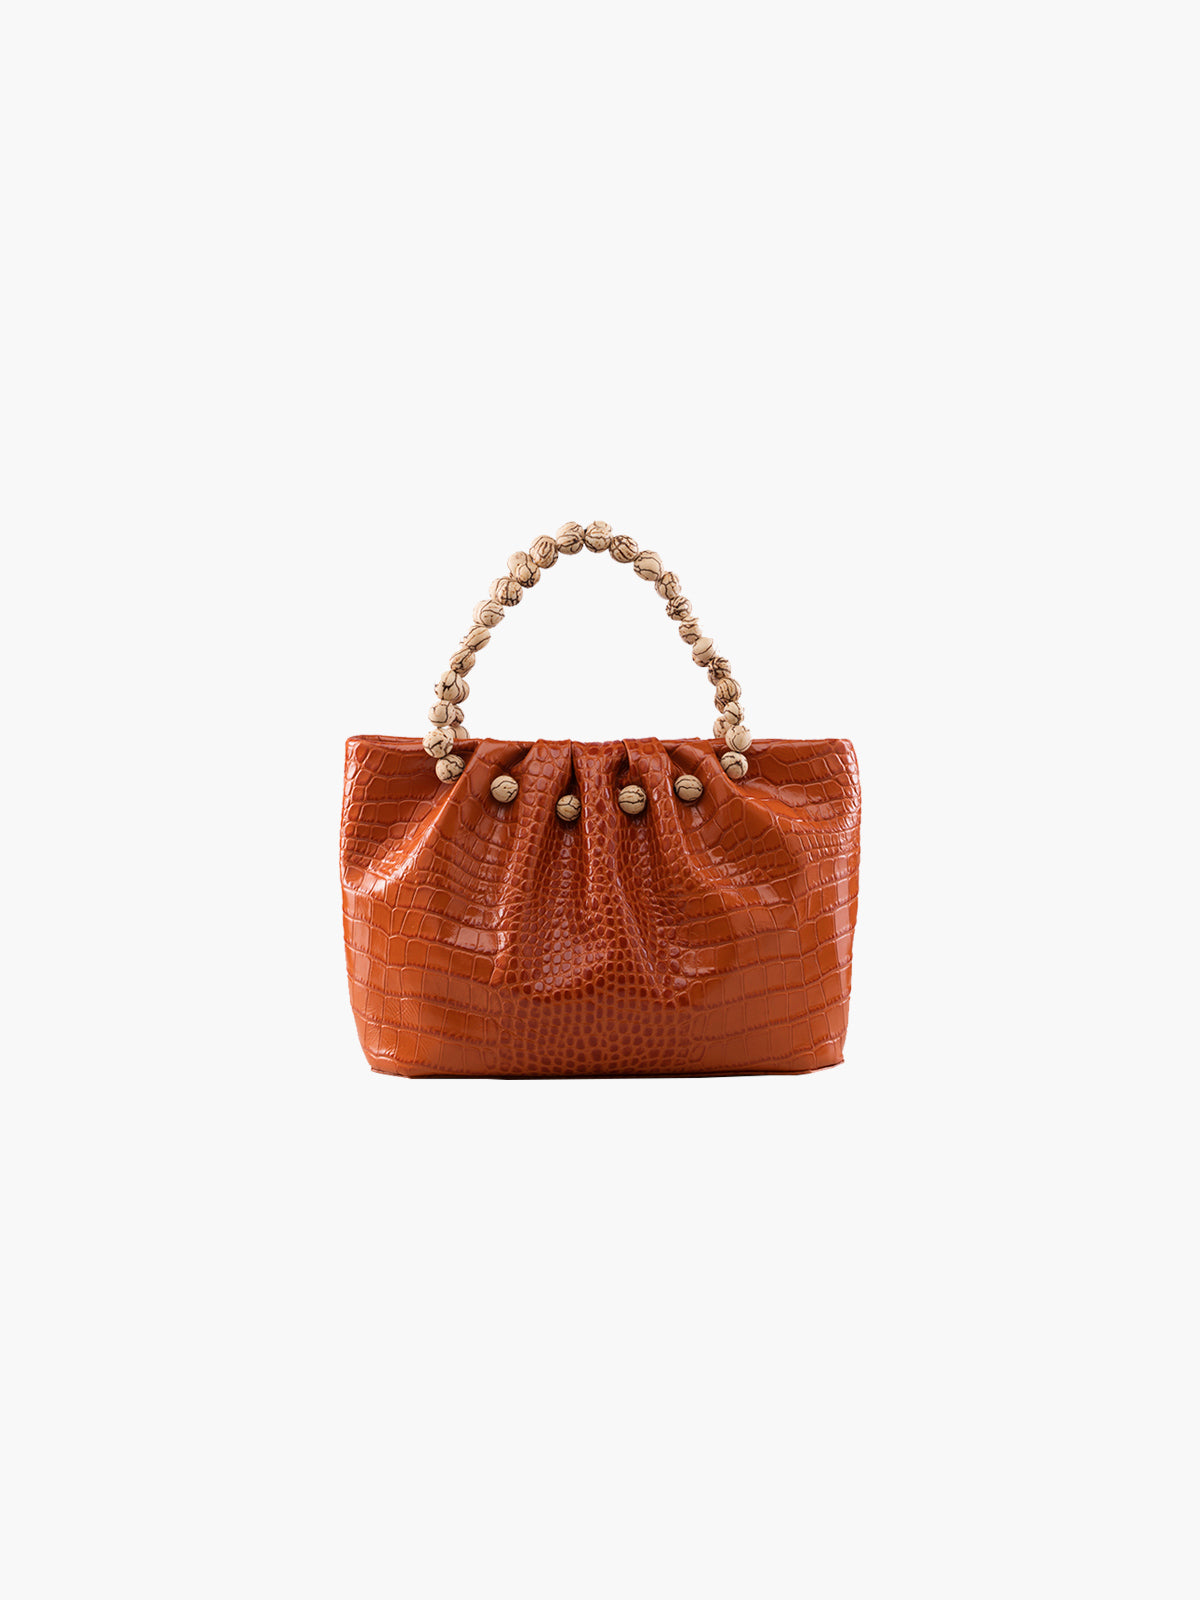 Las Islas Bag | Croc Orange